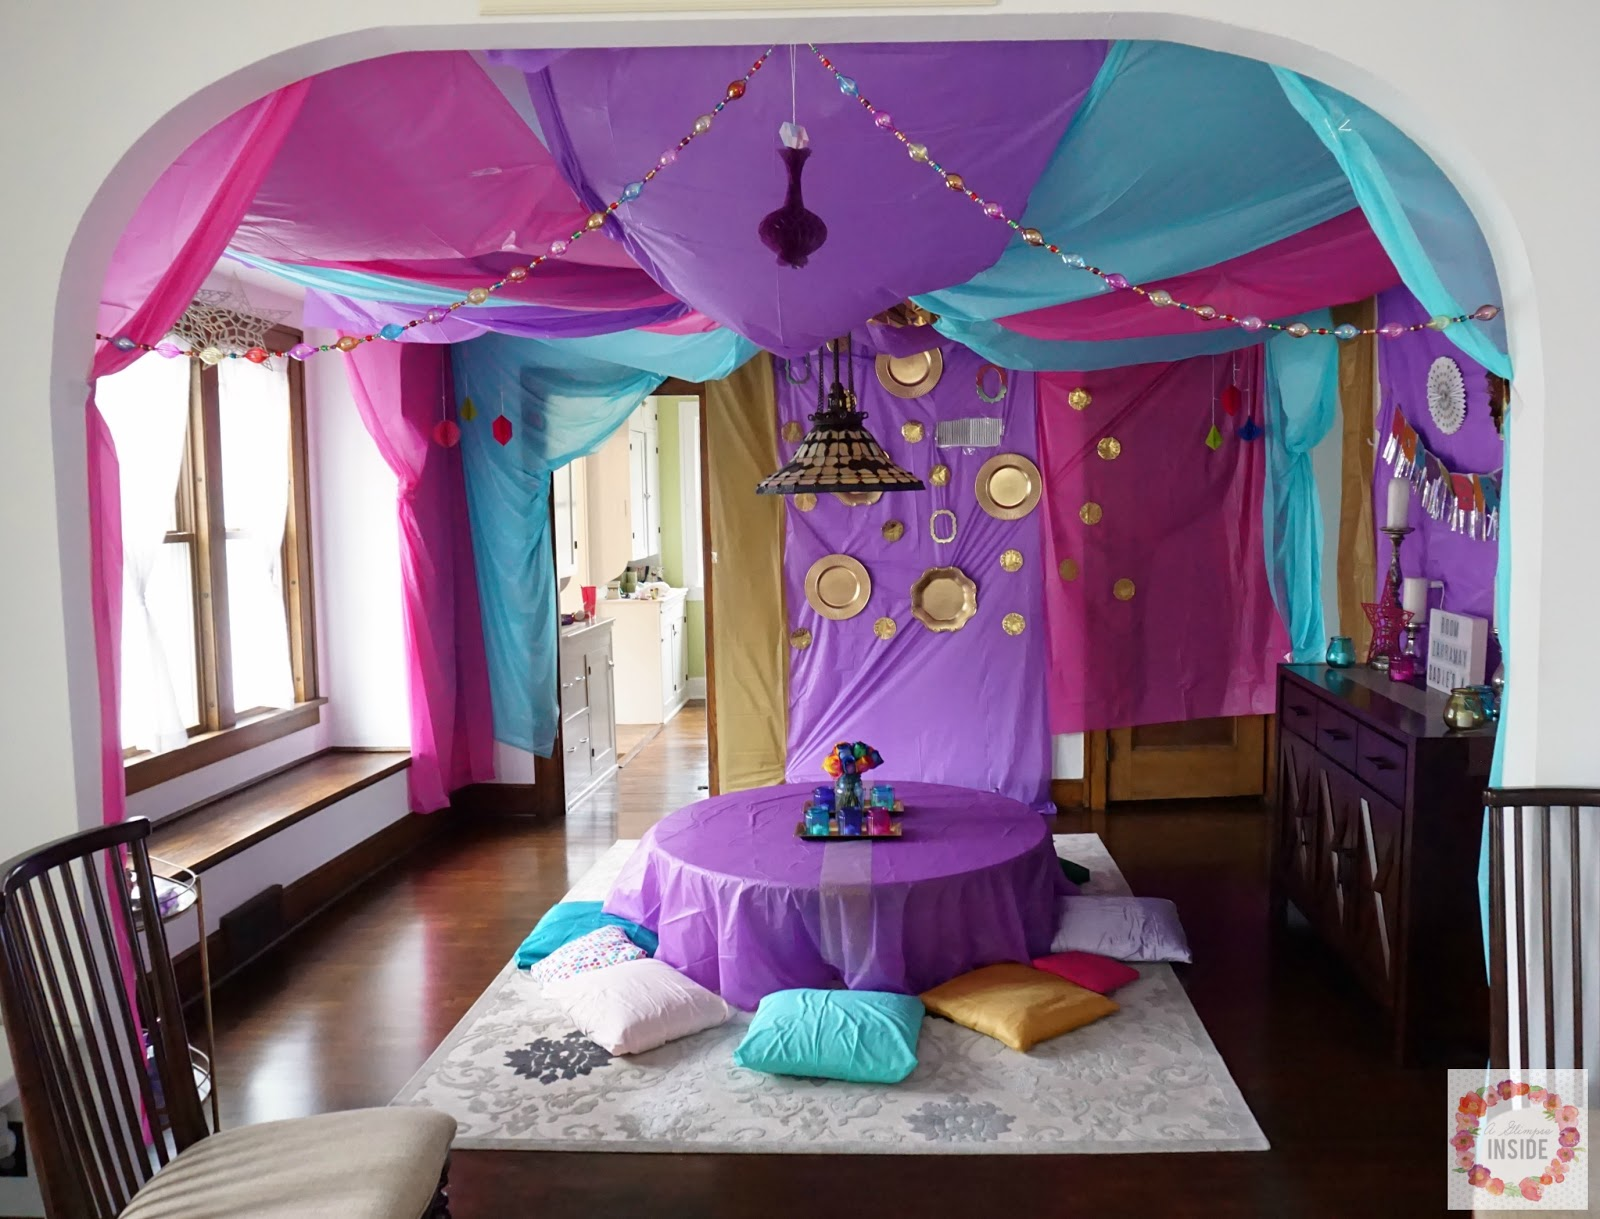 Miss Ss Shimmer And Shine 4th Birthday Party A Glimpse Inside